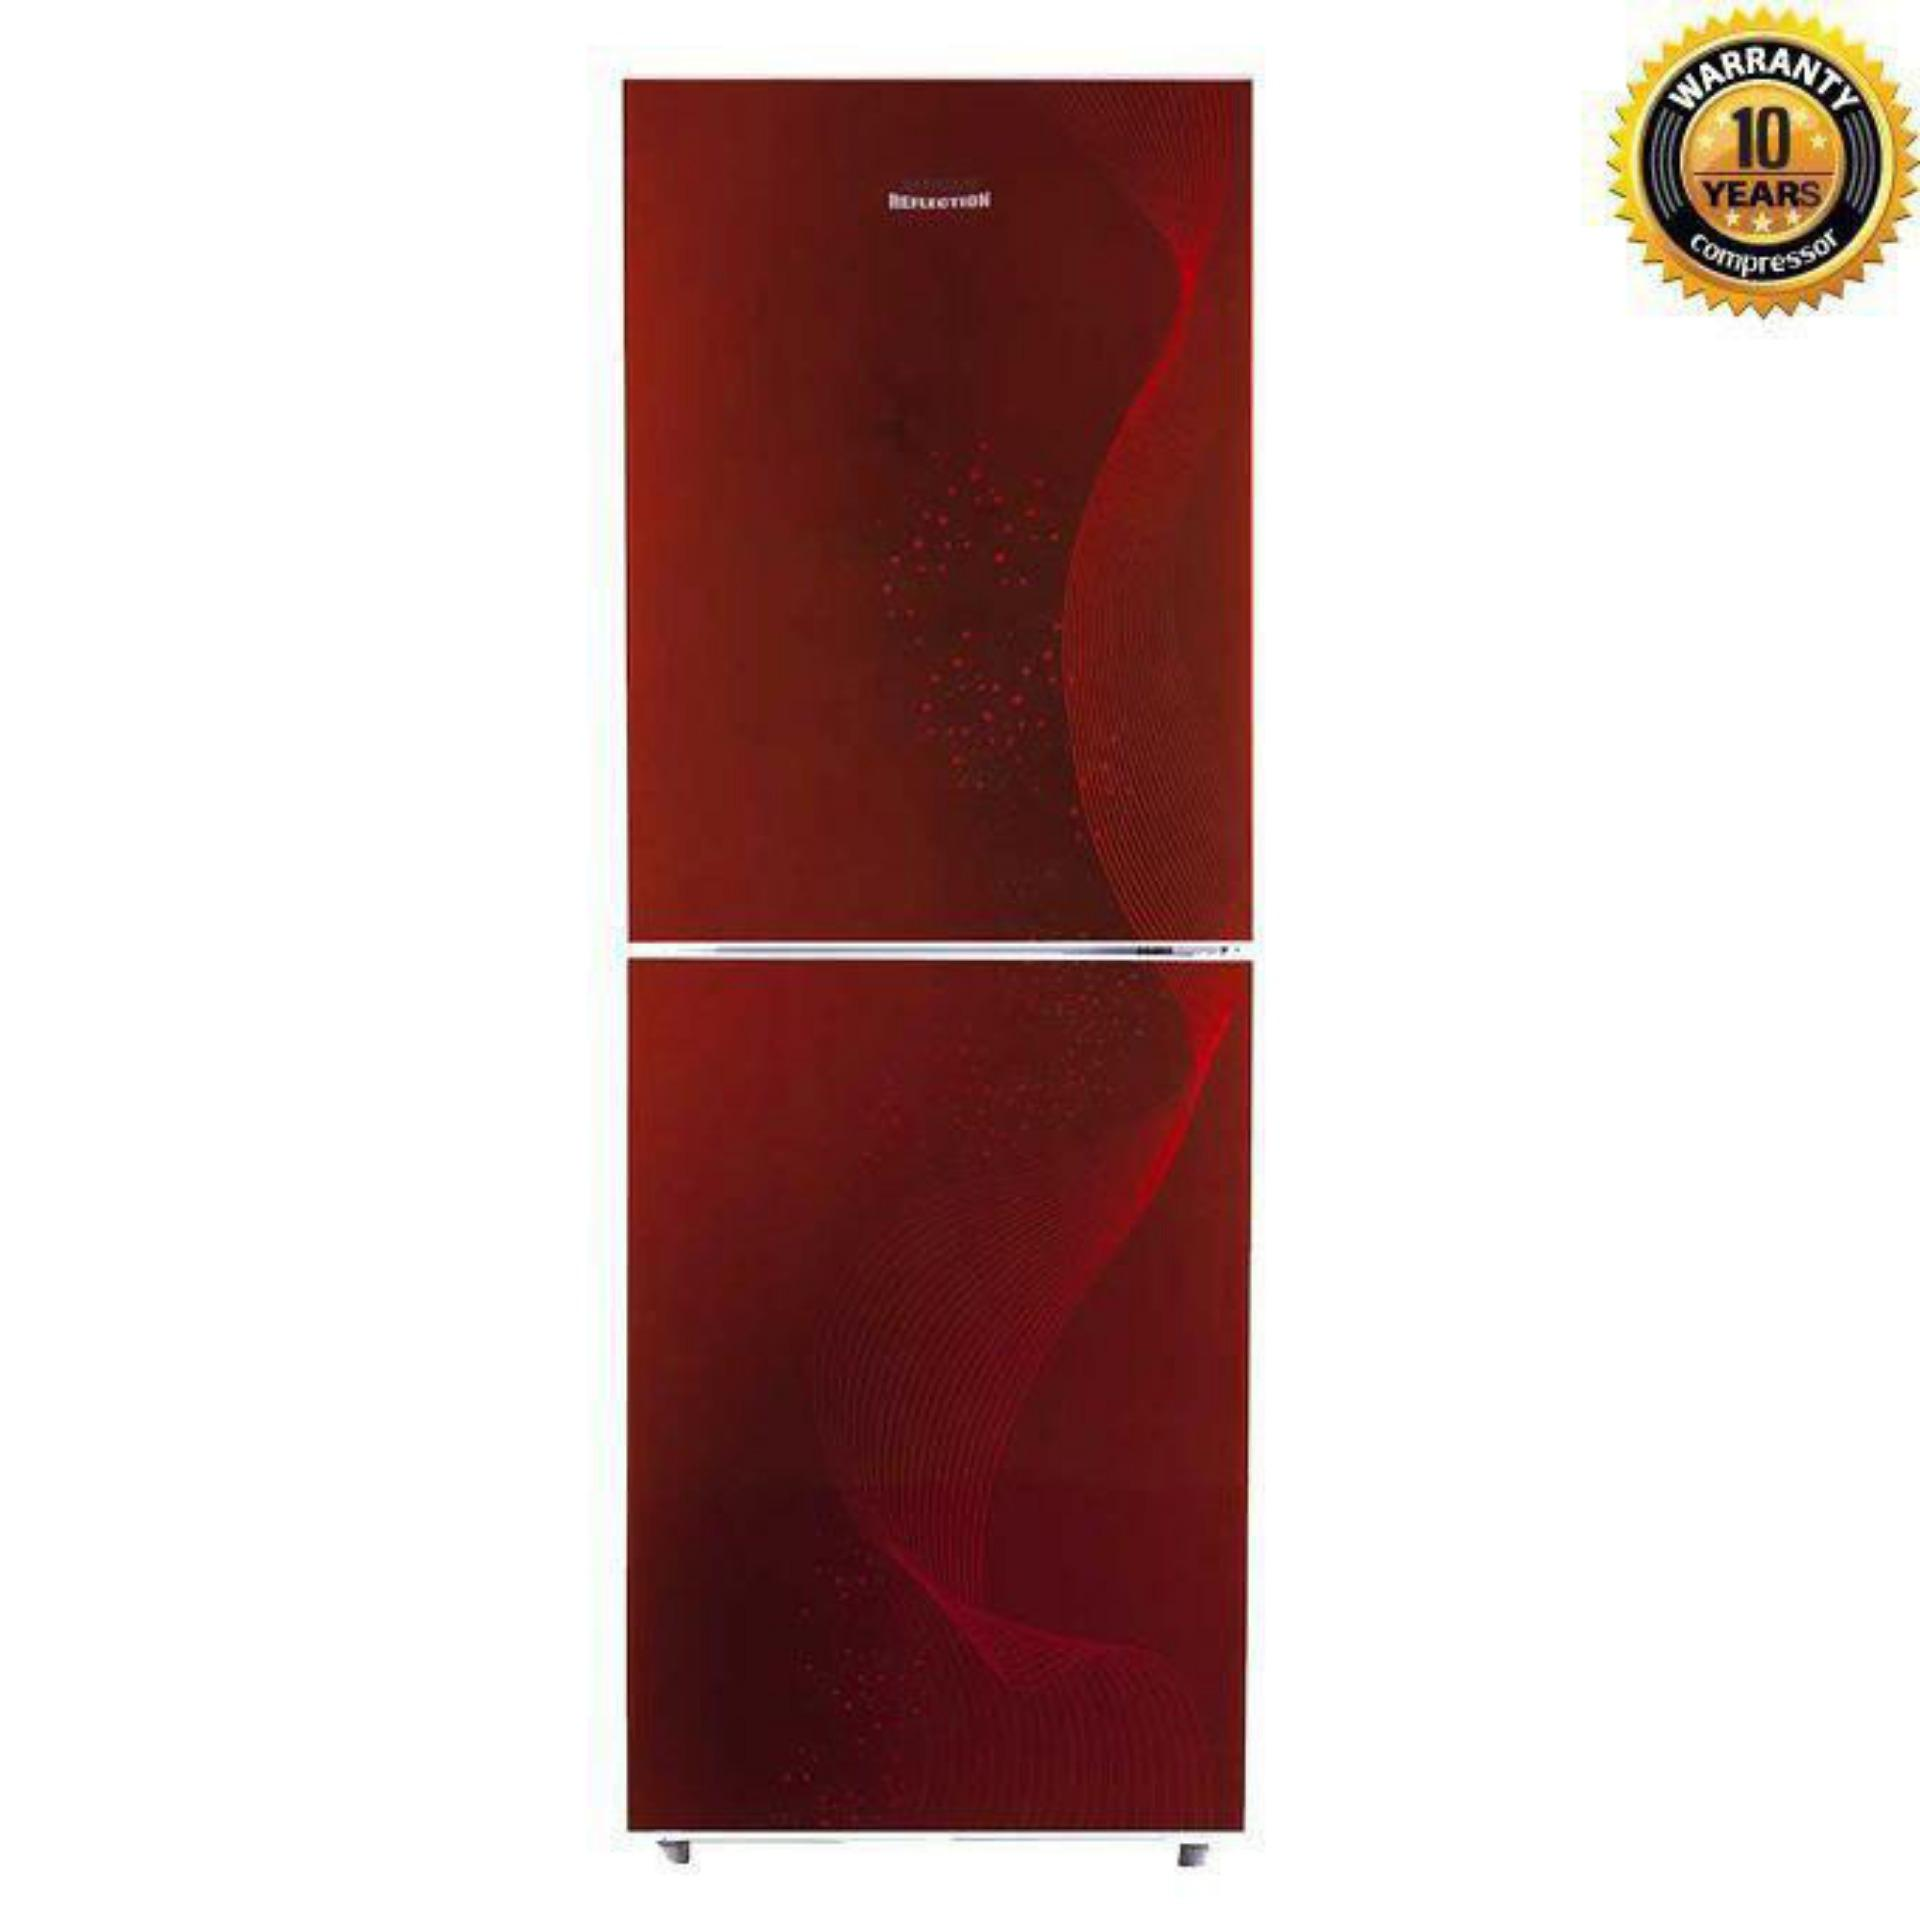 BCD-198R Top Mount Refrigerator 198L - Red